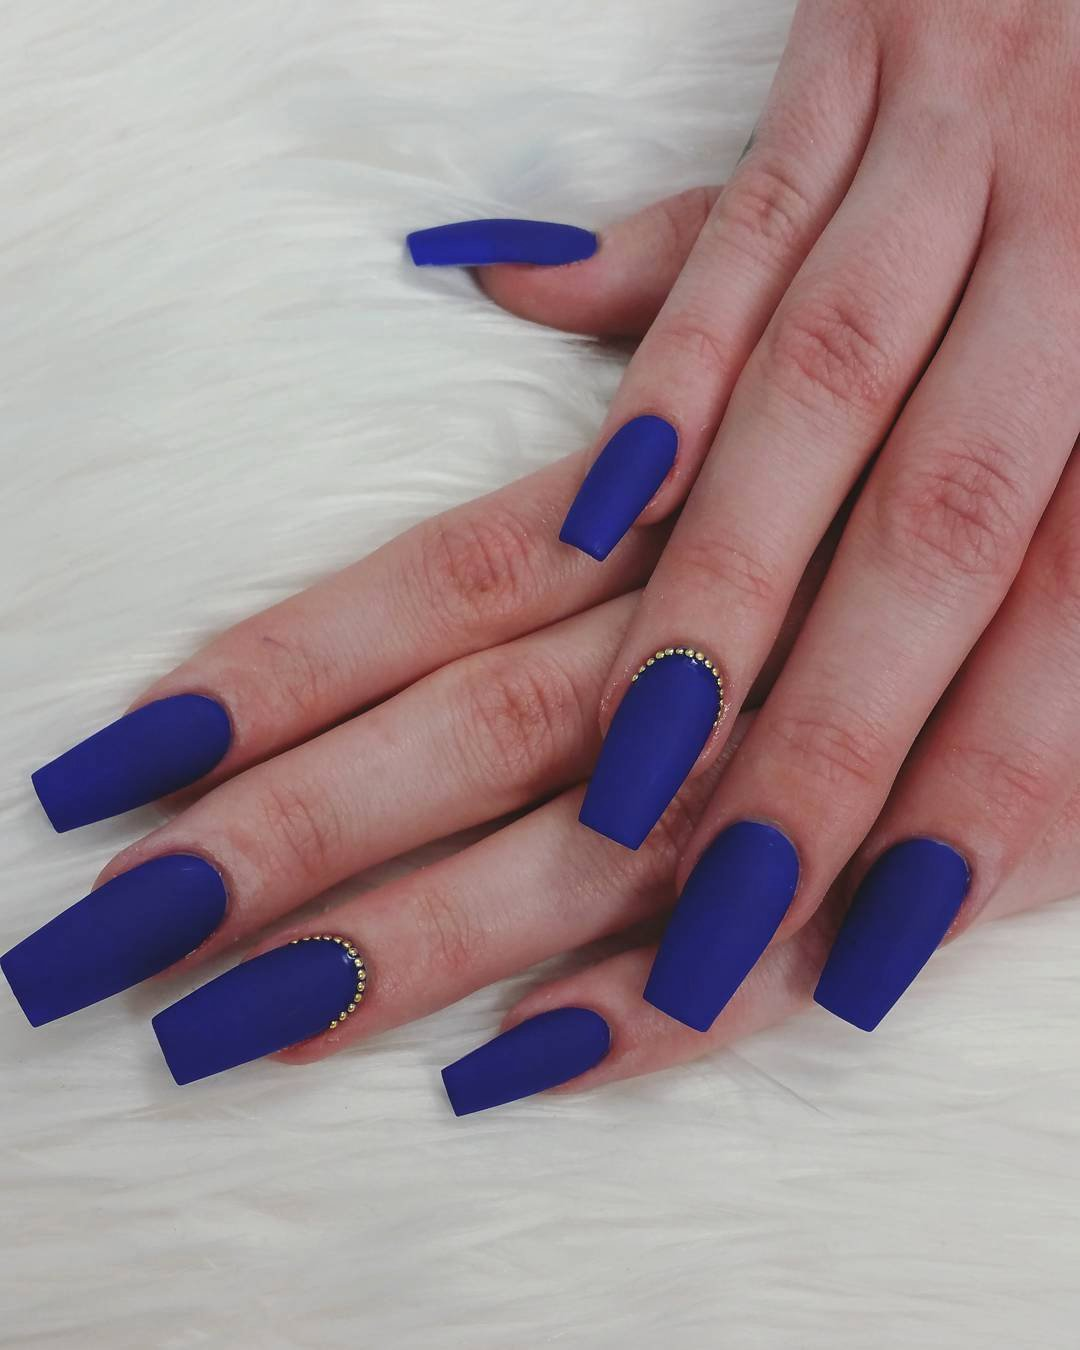 Blue Nail Polish Designs Elegant 21 Royal Blue Nail Art Designs Ideas